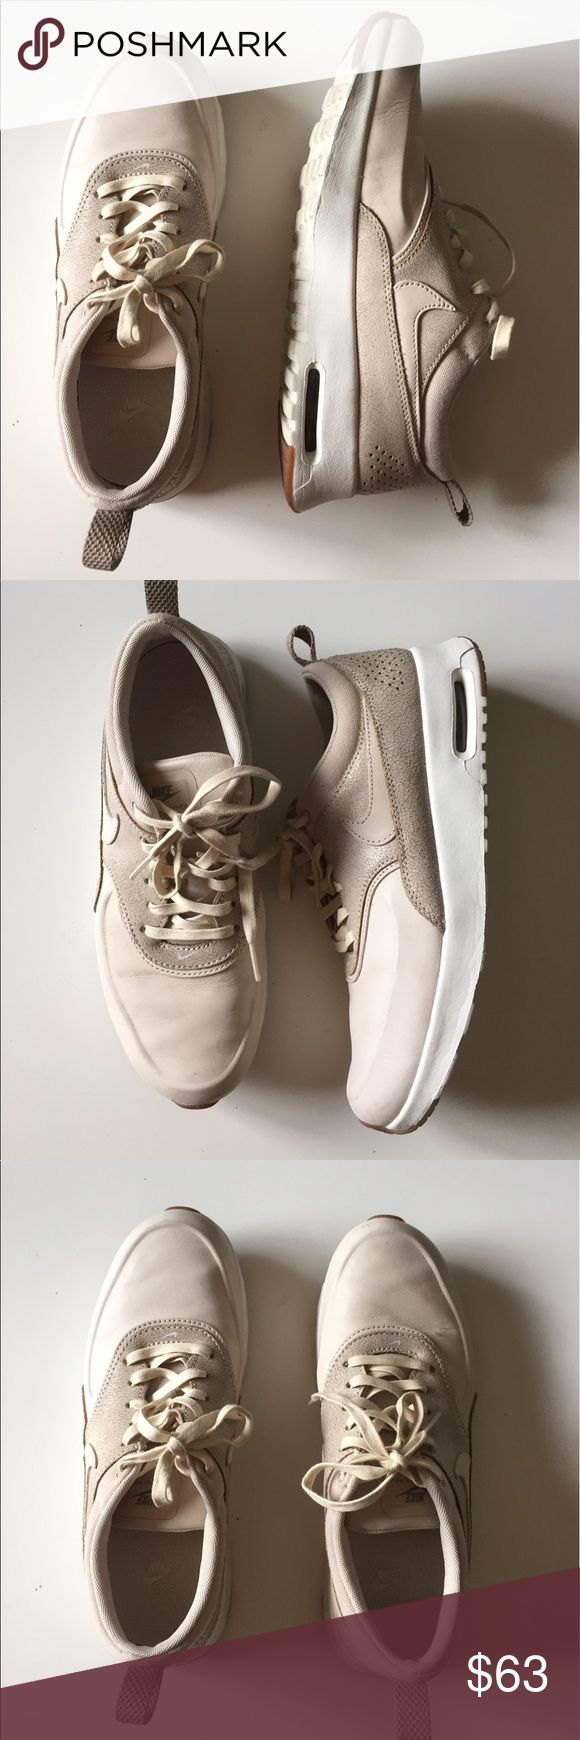 Nike max Thea premium excellent condition. Air max Thea premium sneakers Color oatmeal,sail& khaki excellent condition size 8. Has a very small scratch that no one will notice. Nike Shoes Sneakers